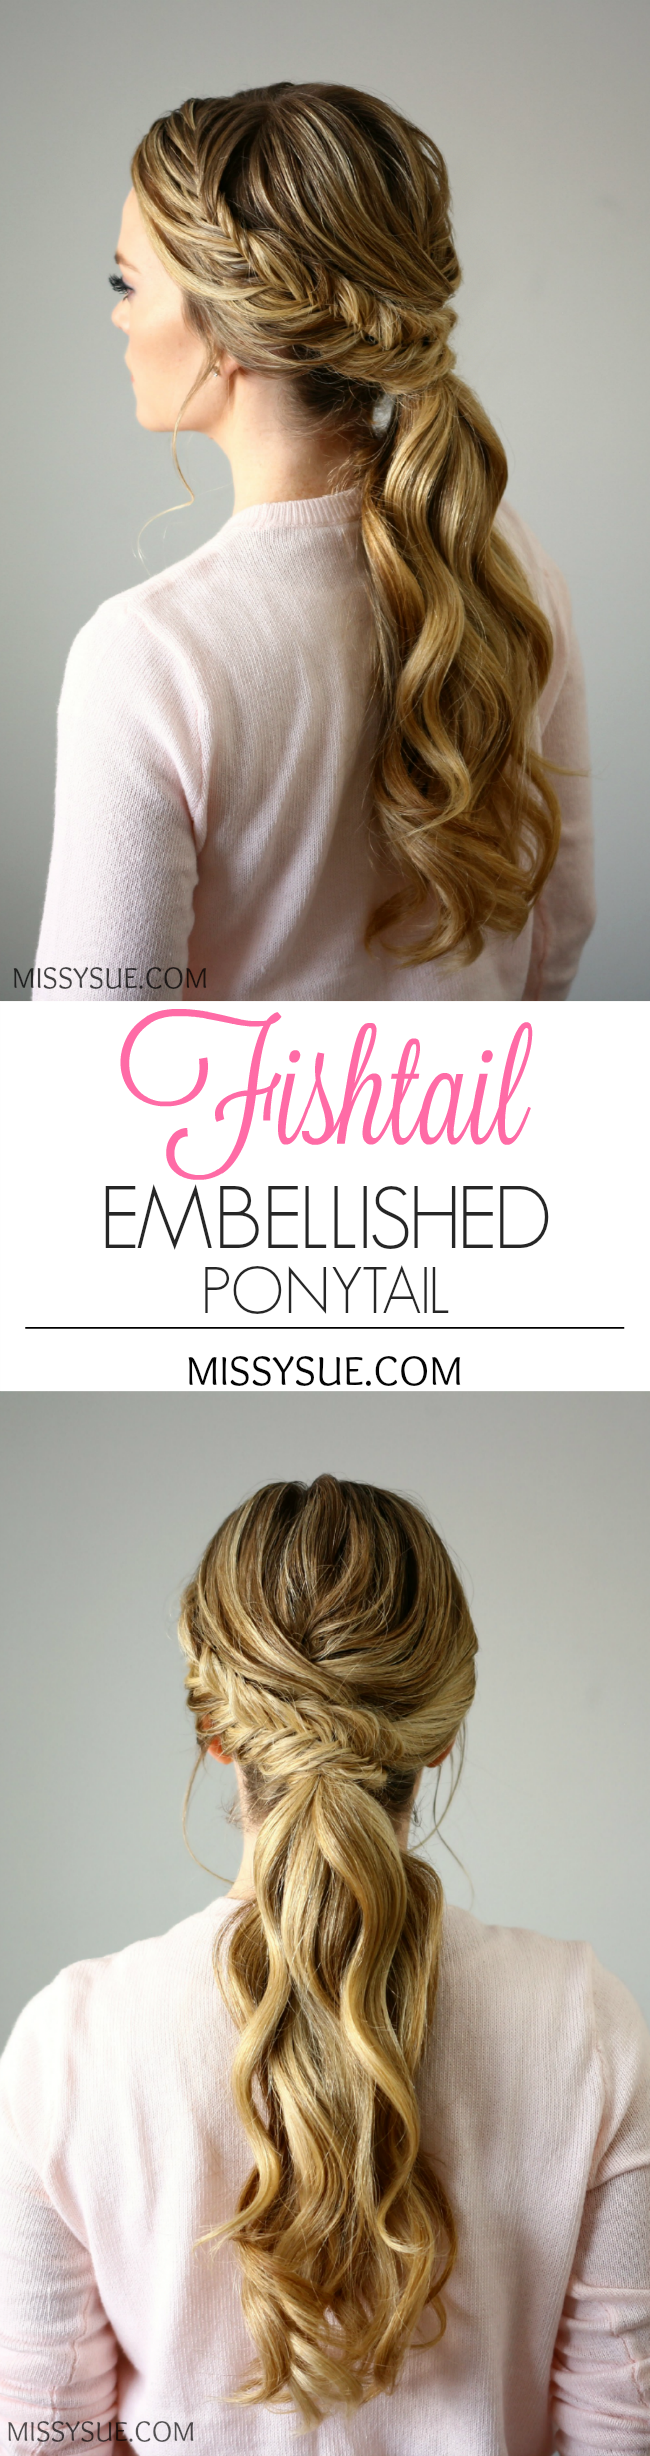 Fishtail embellished ponytail peinados pinterest fishtail